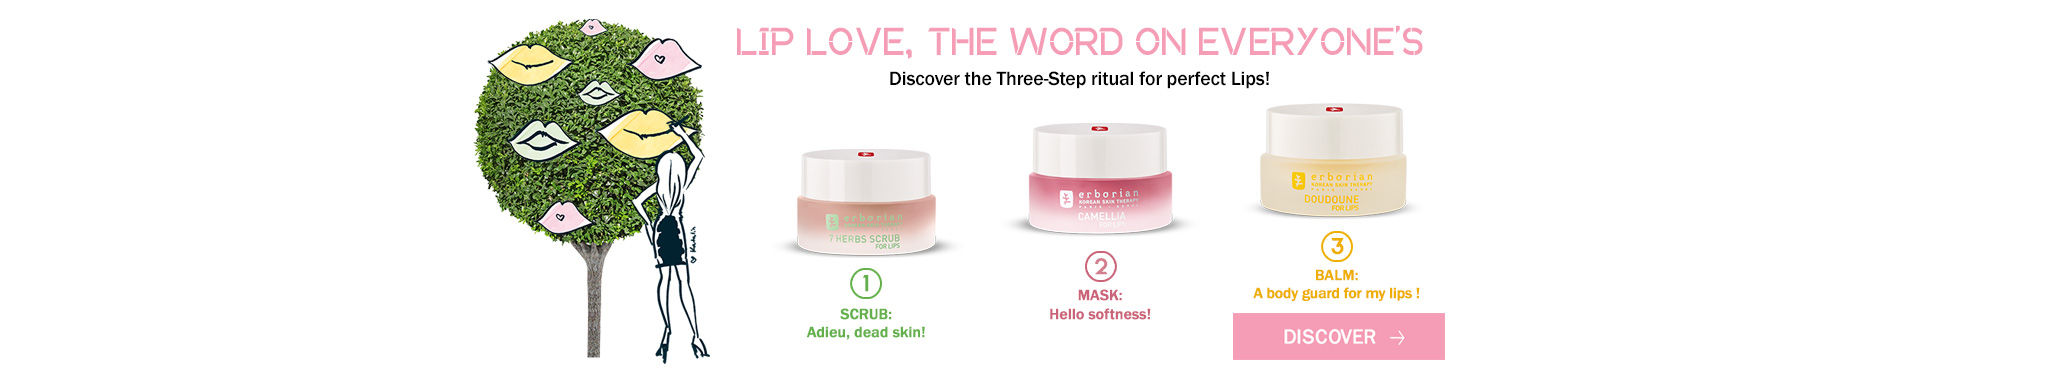 exfoliate nourish and protect your lips with our lip love products